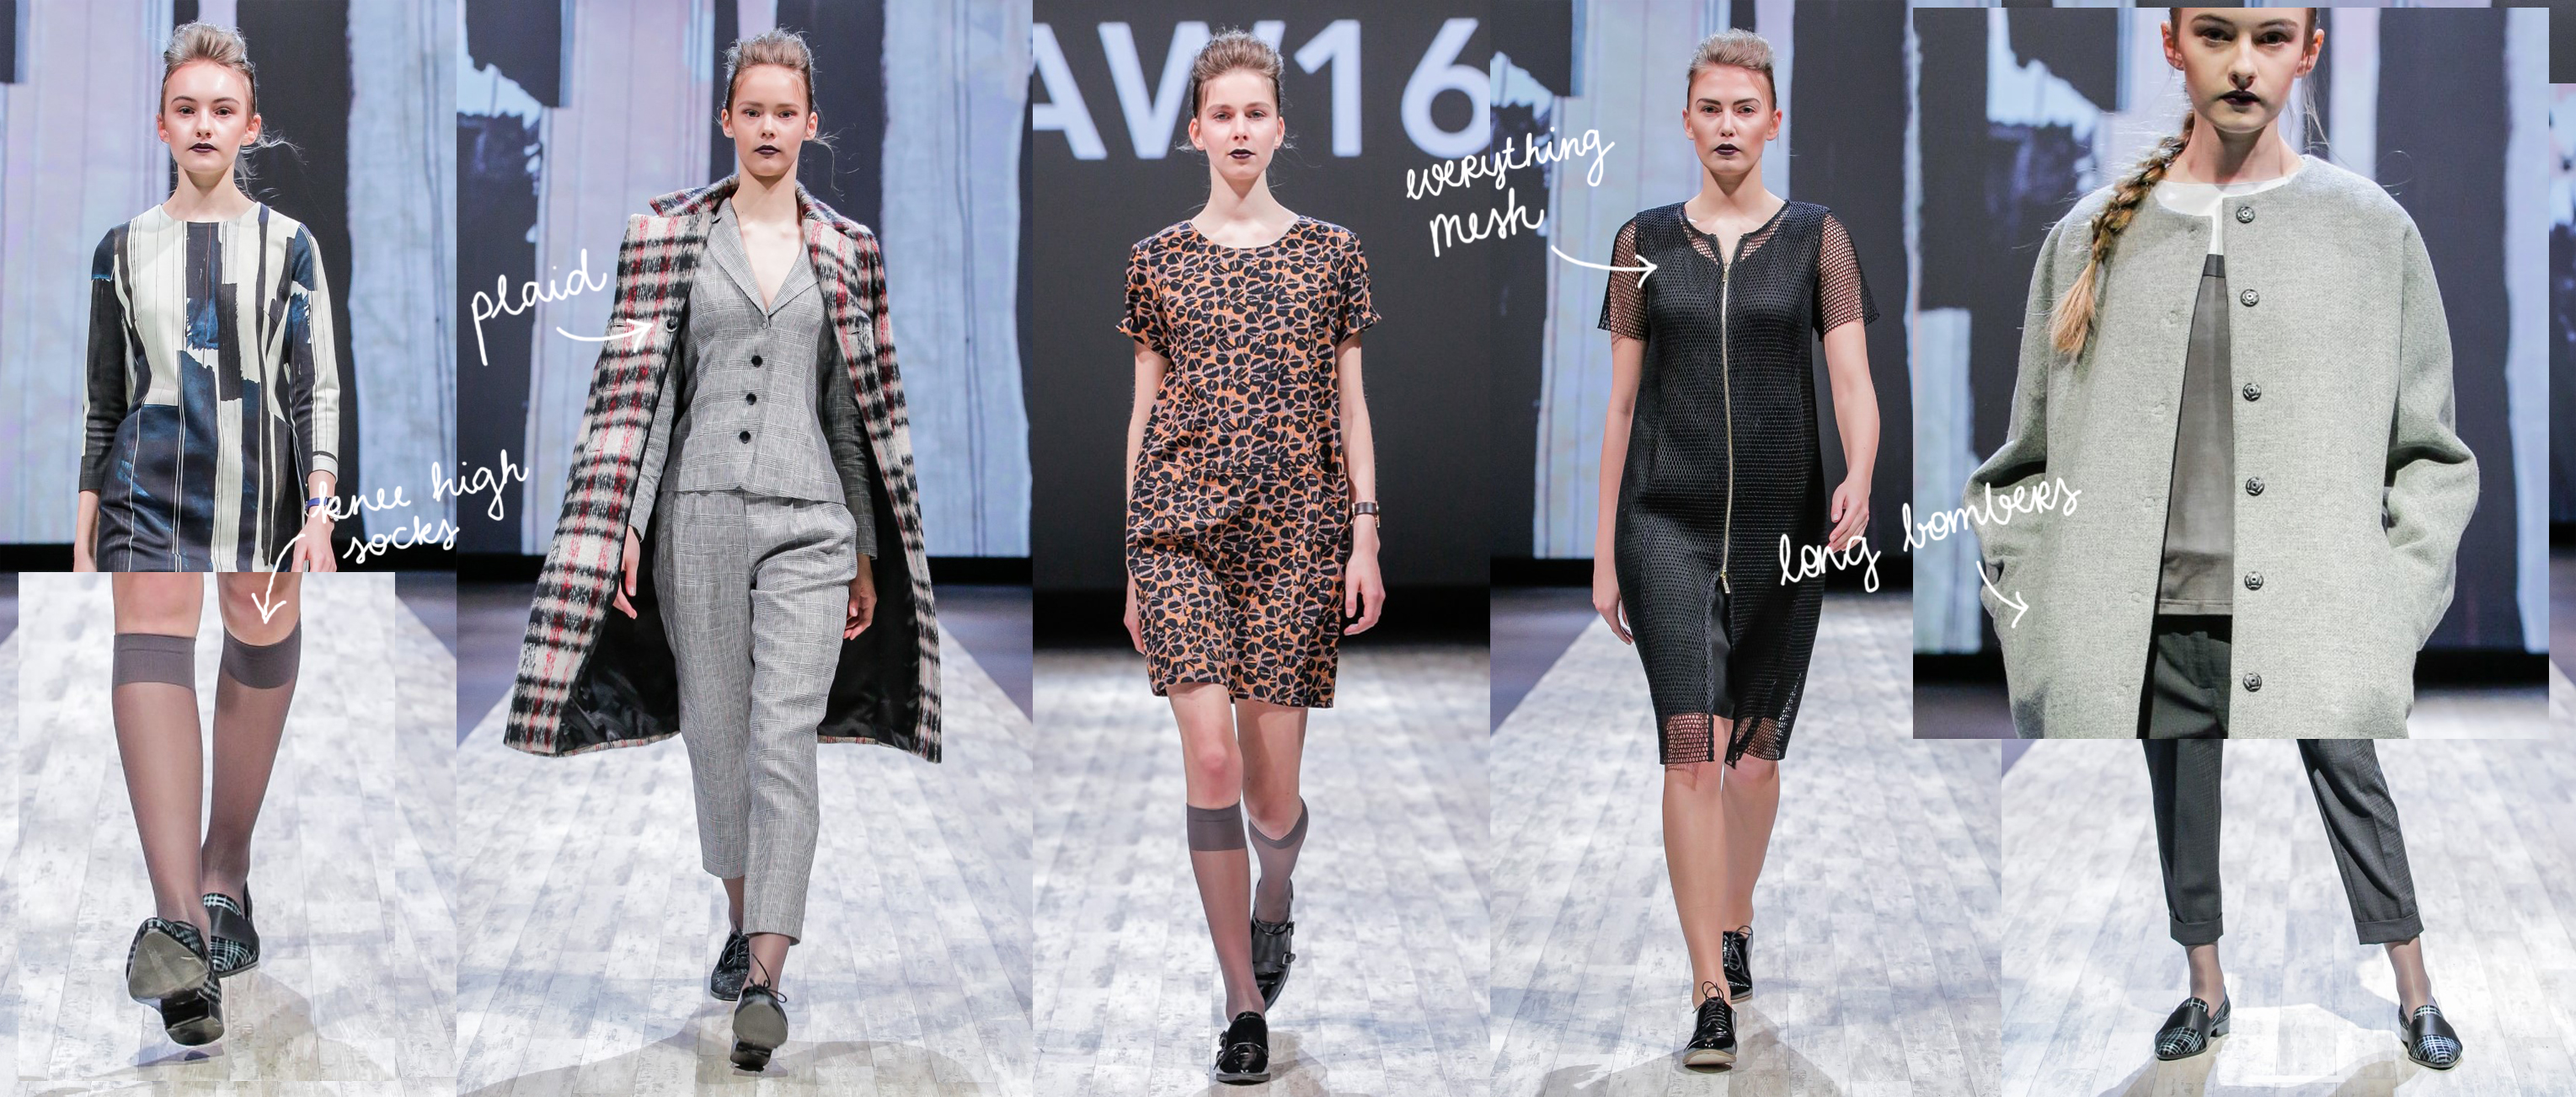 Tallinn Fashion Week 2016 day 1